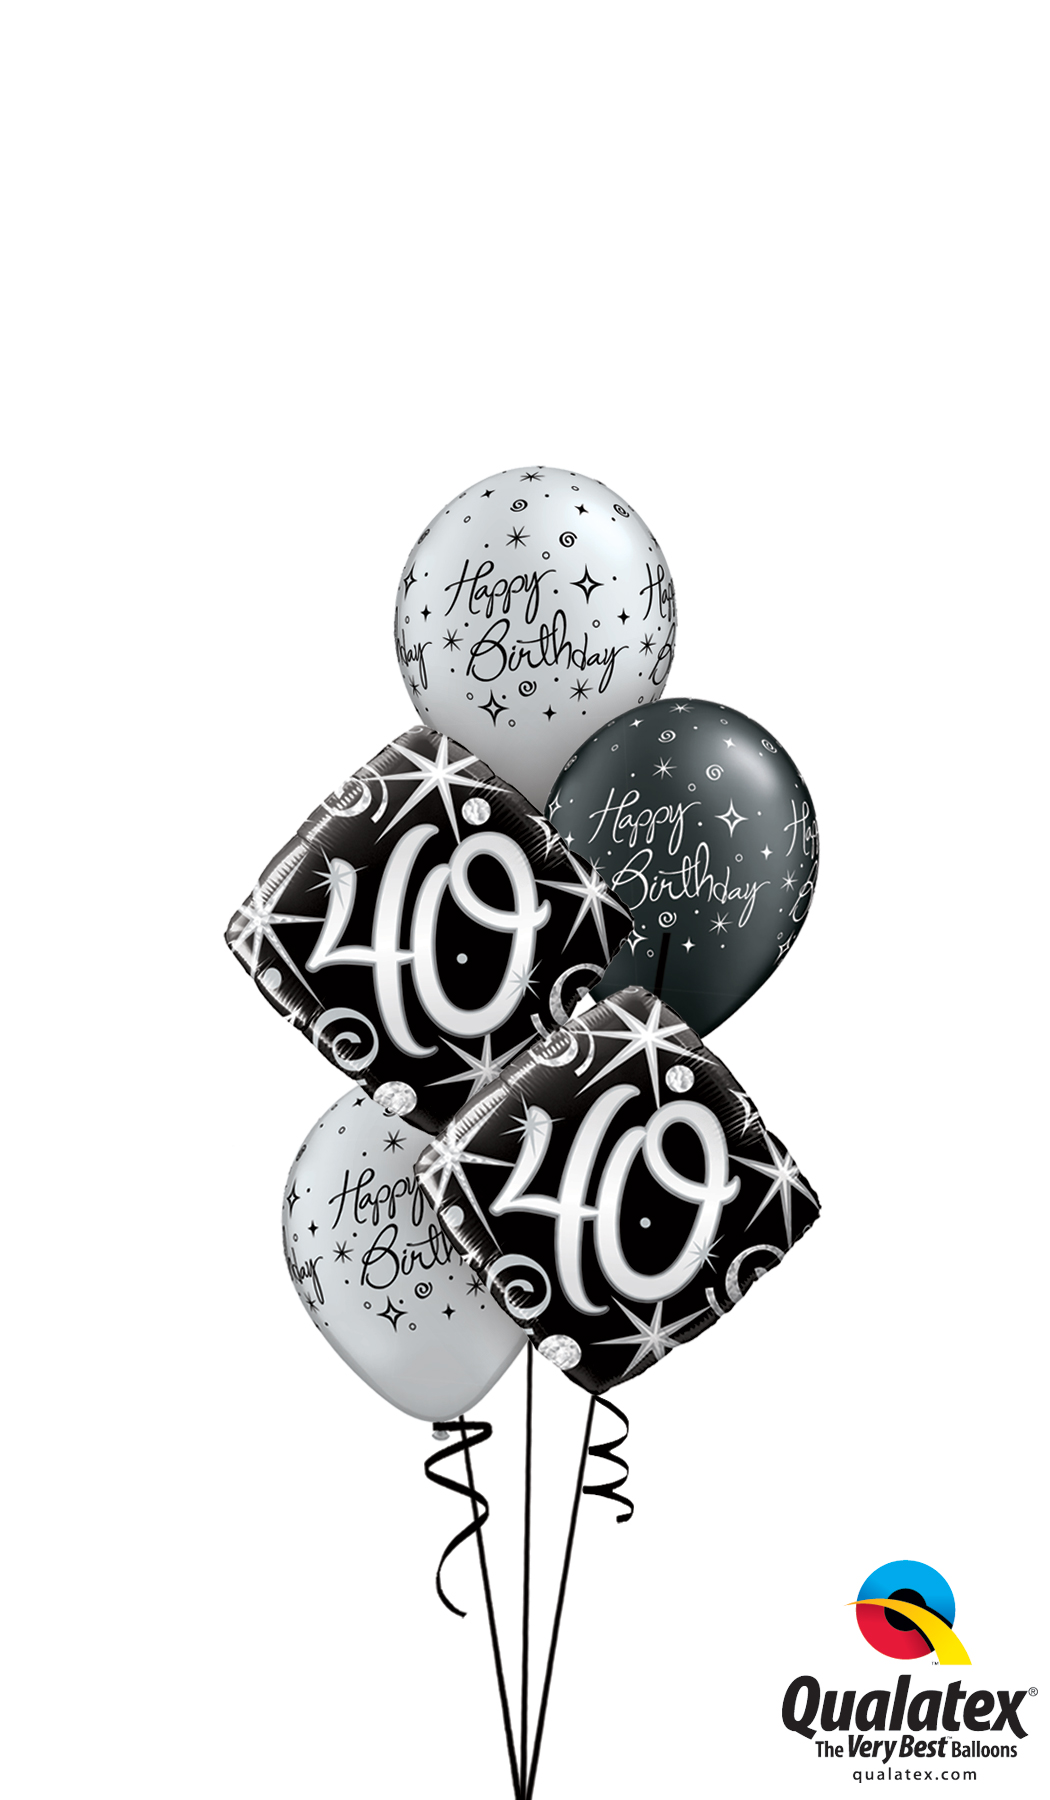 40th Birthday Black Silver Bouquet Helium Filled Foil Balloon